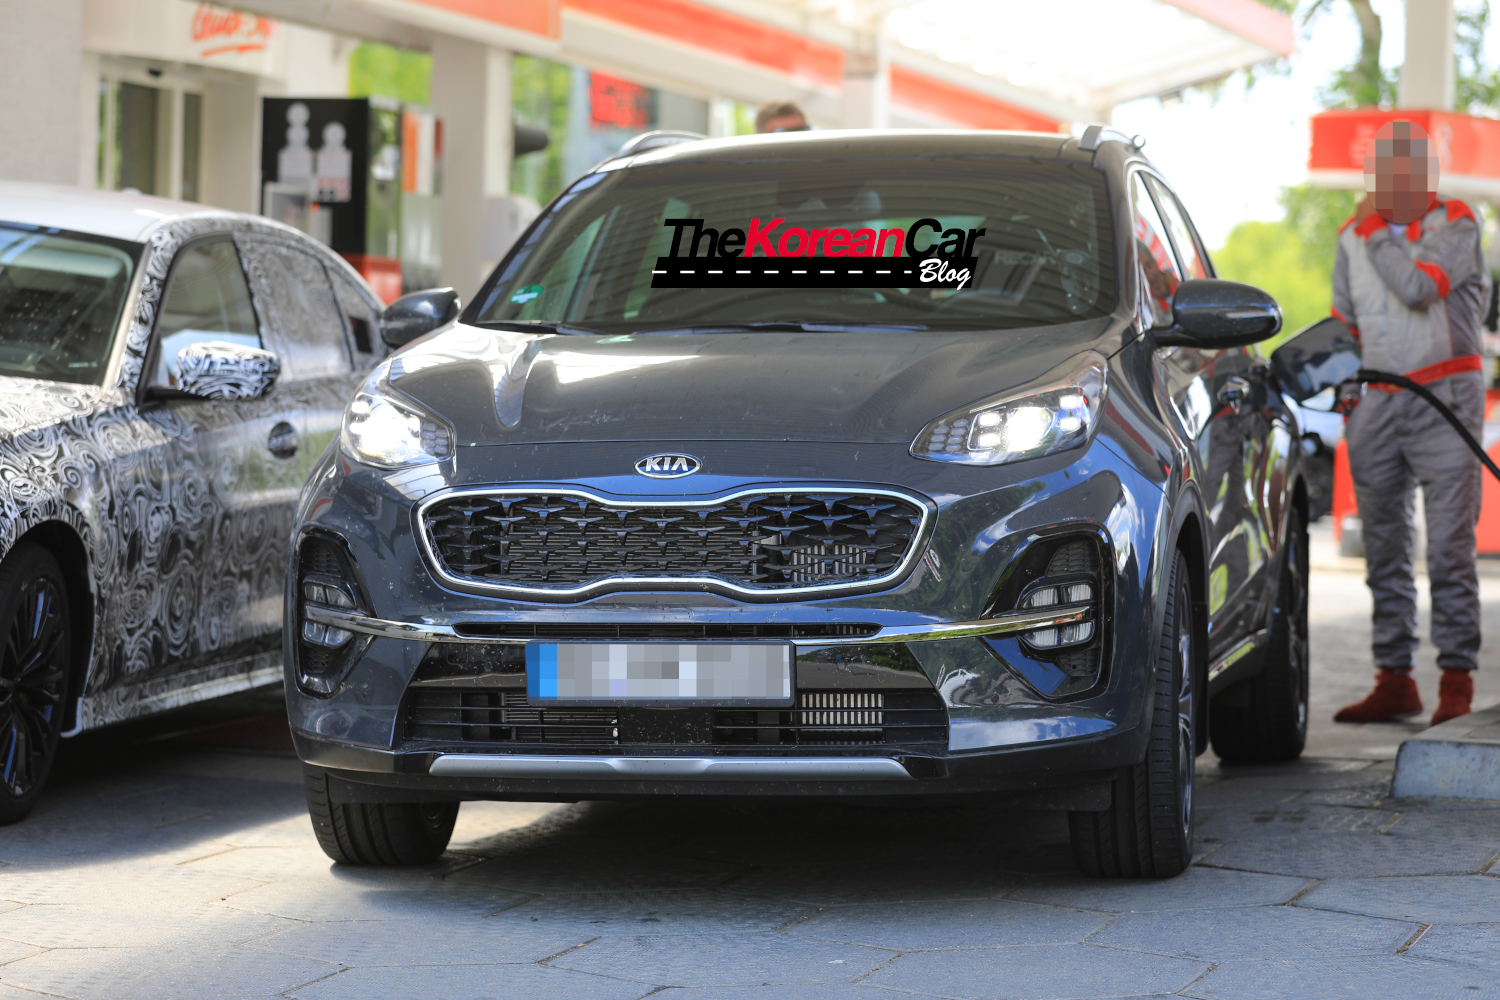 Kia Sportage Facelift Spied Undisguised - The Korean Car Blog